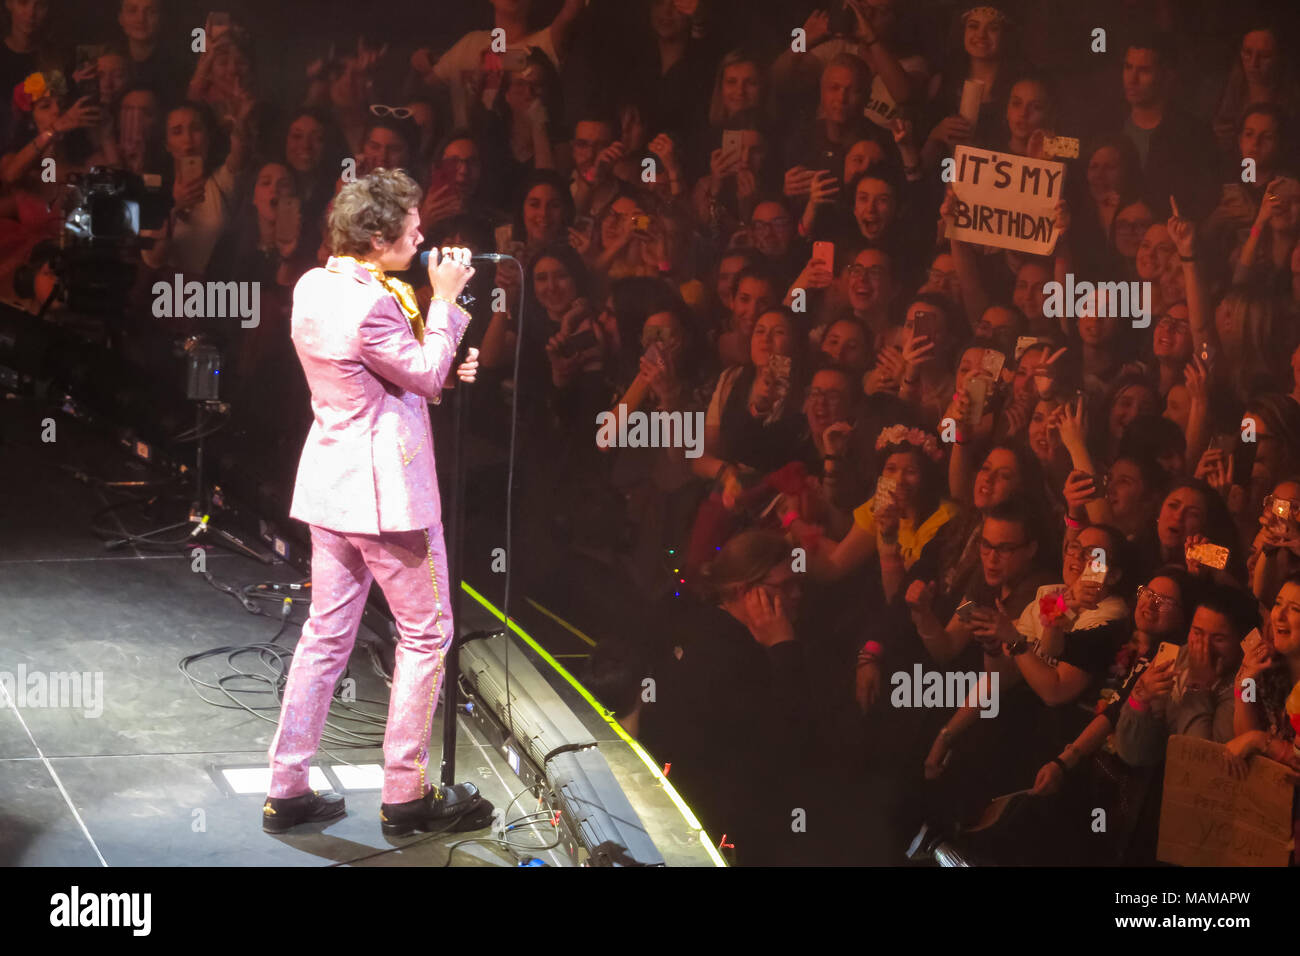 Milan,  Italy - April 2, 2018. The English pop singer Harry Styles performs a live concert at Mediolanum Forum in Assago, Milan. Credit: Alfio Finocchiaro photo / Alamy Live News - Stock Image